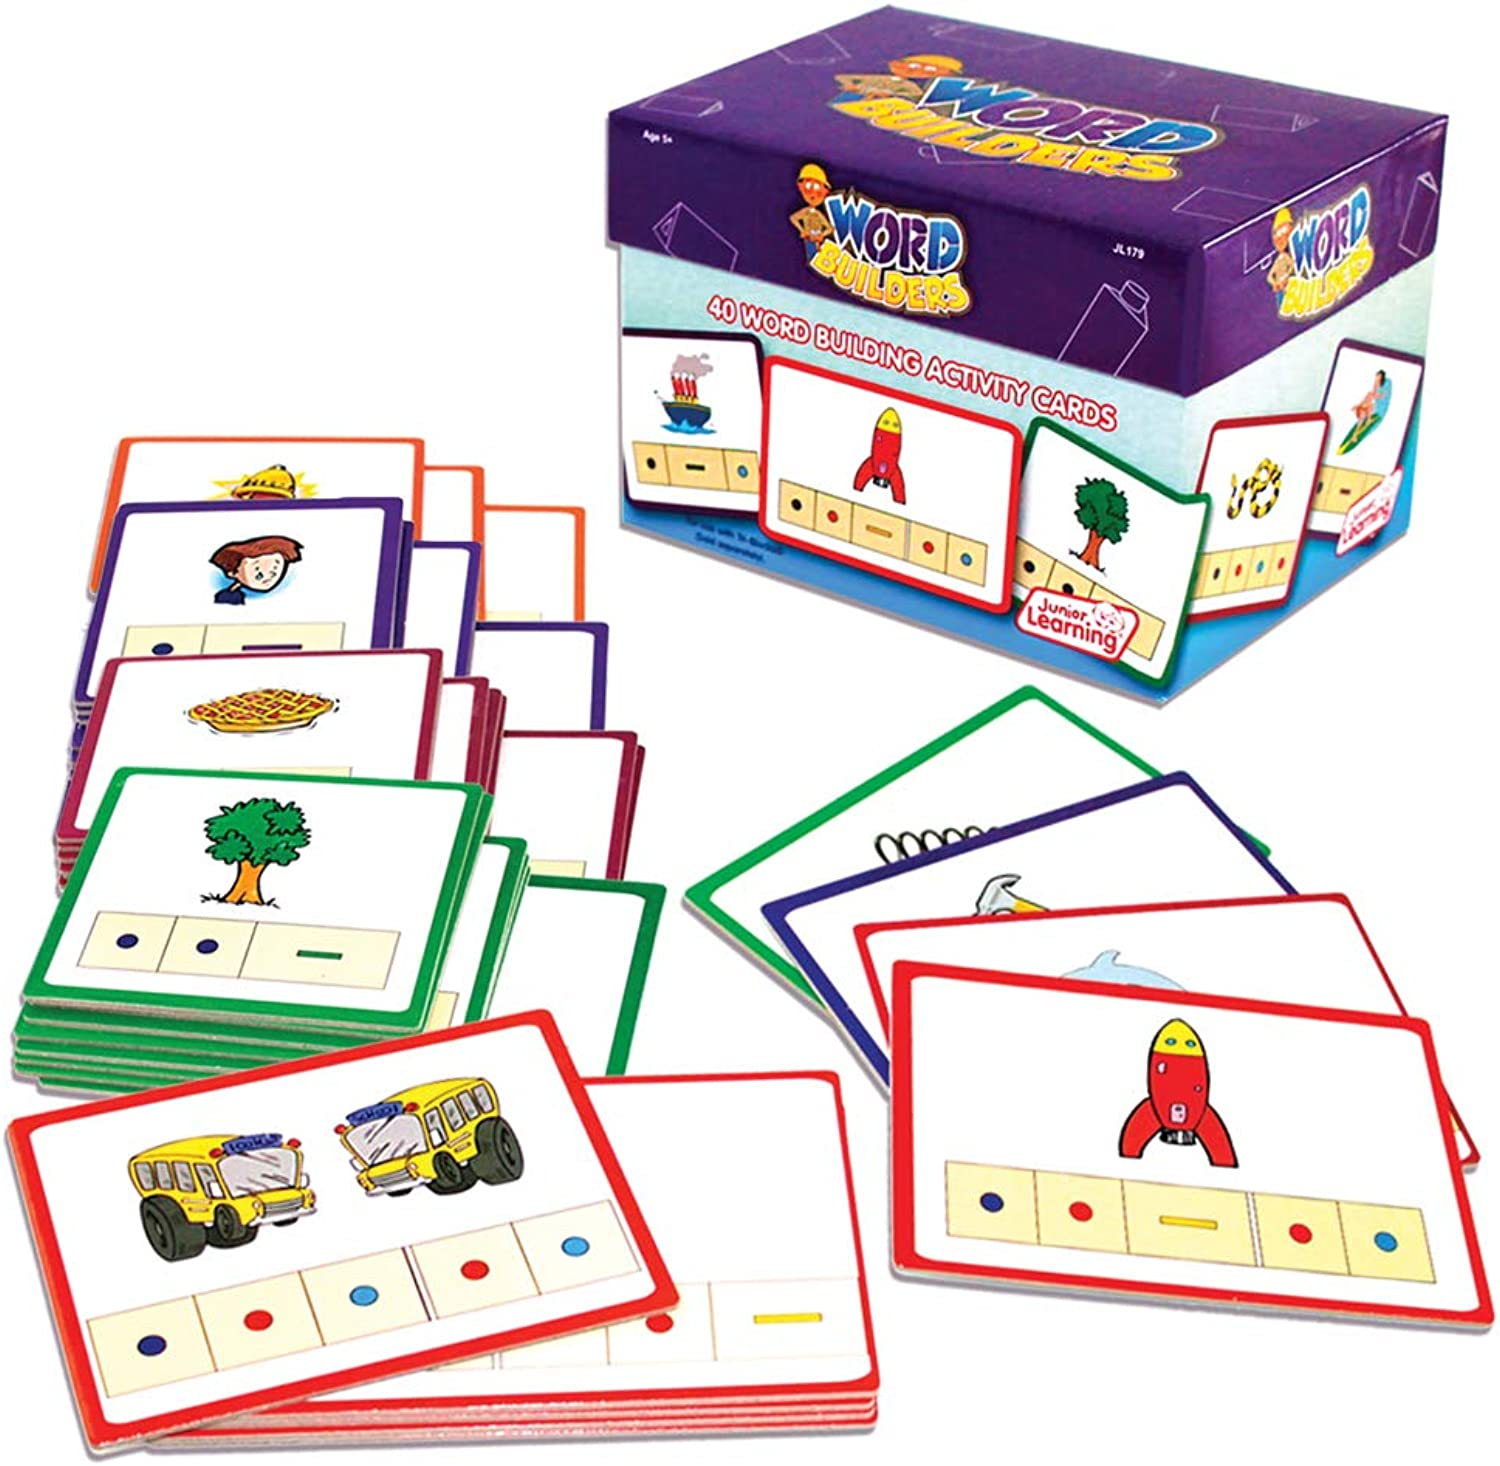 hasta un 50% de descuento Junior Learning Word Builders Activity Cocheds by by by Junior Learning  elige tu favorito